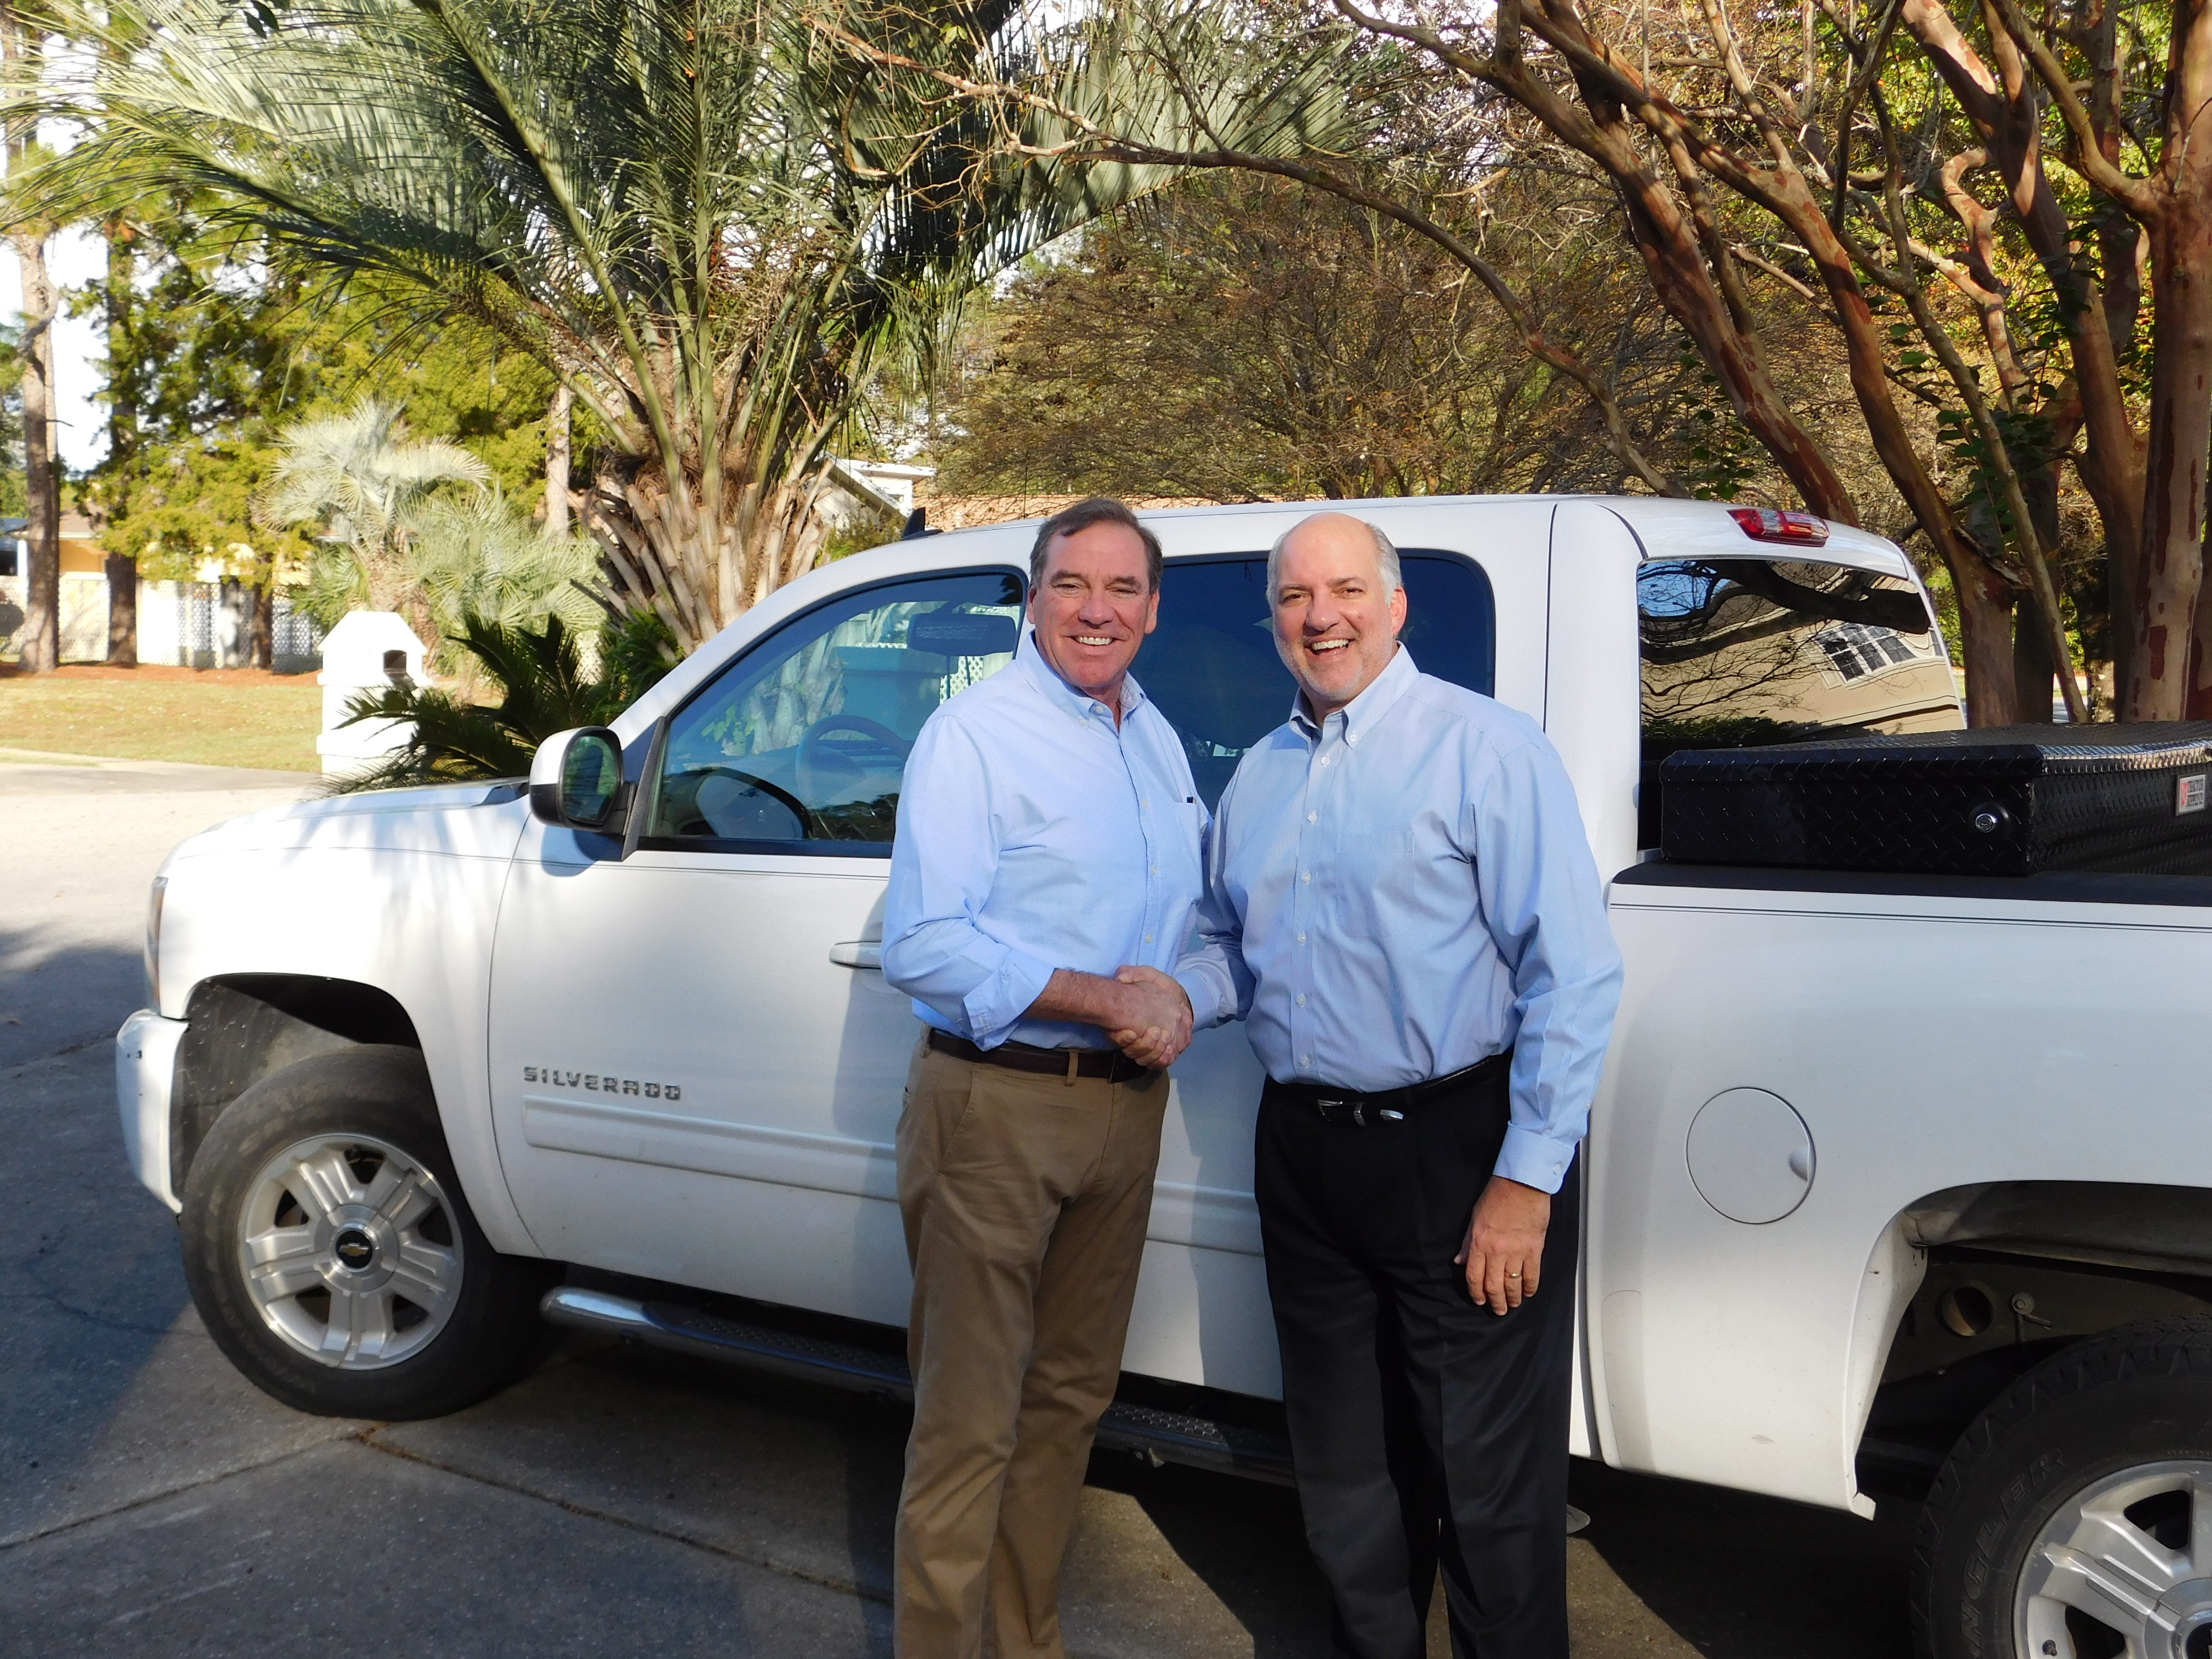 Dr. Dunn with Steve Southerland